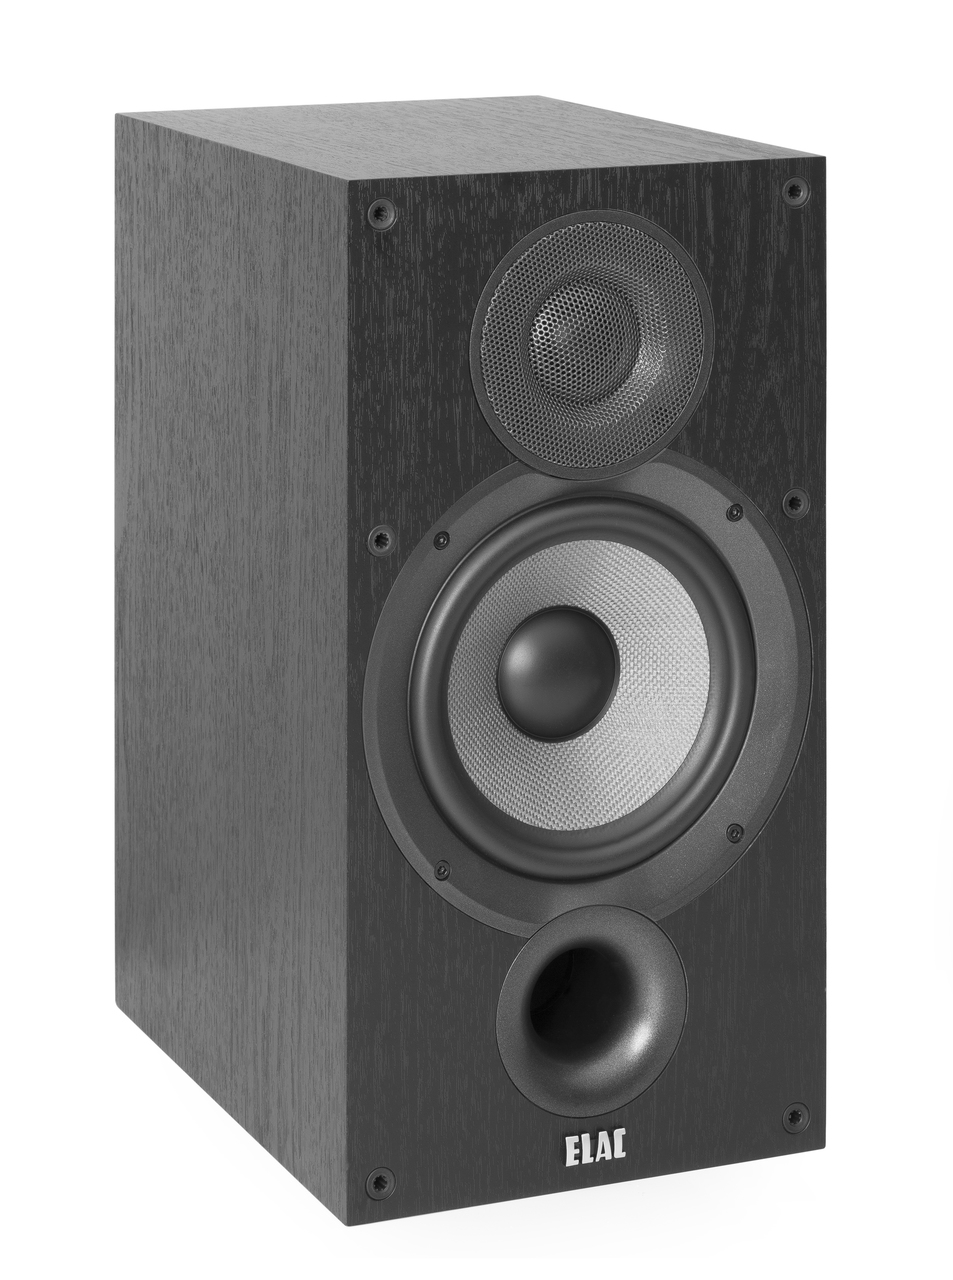 ELAC B62 NEW 2-way, bookshelf speakers. At True Audiophile.